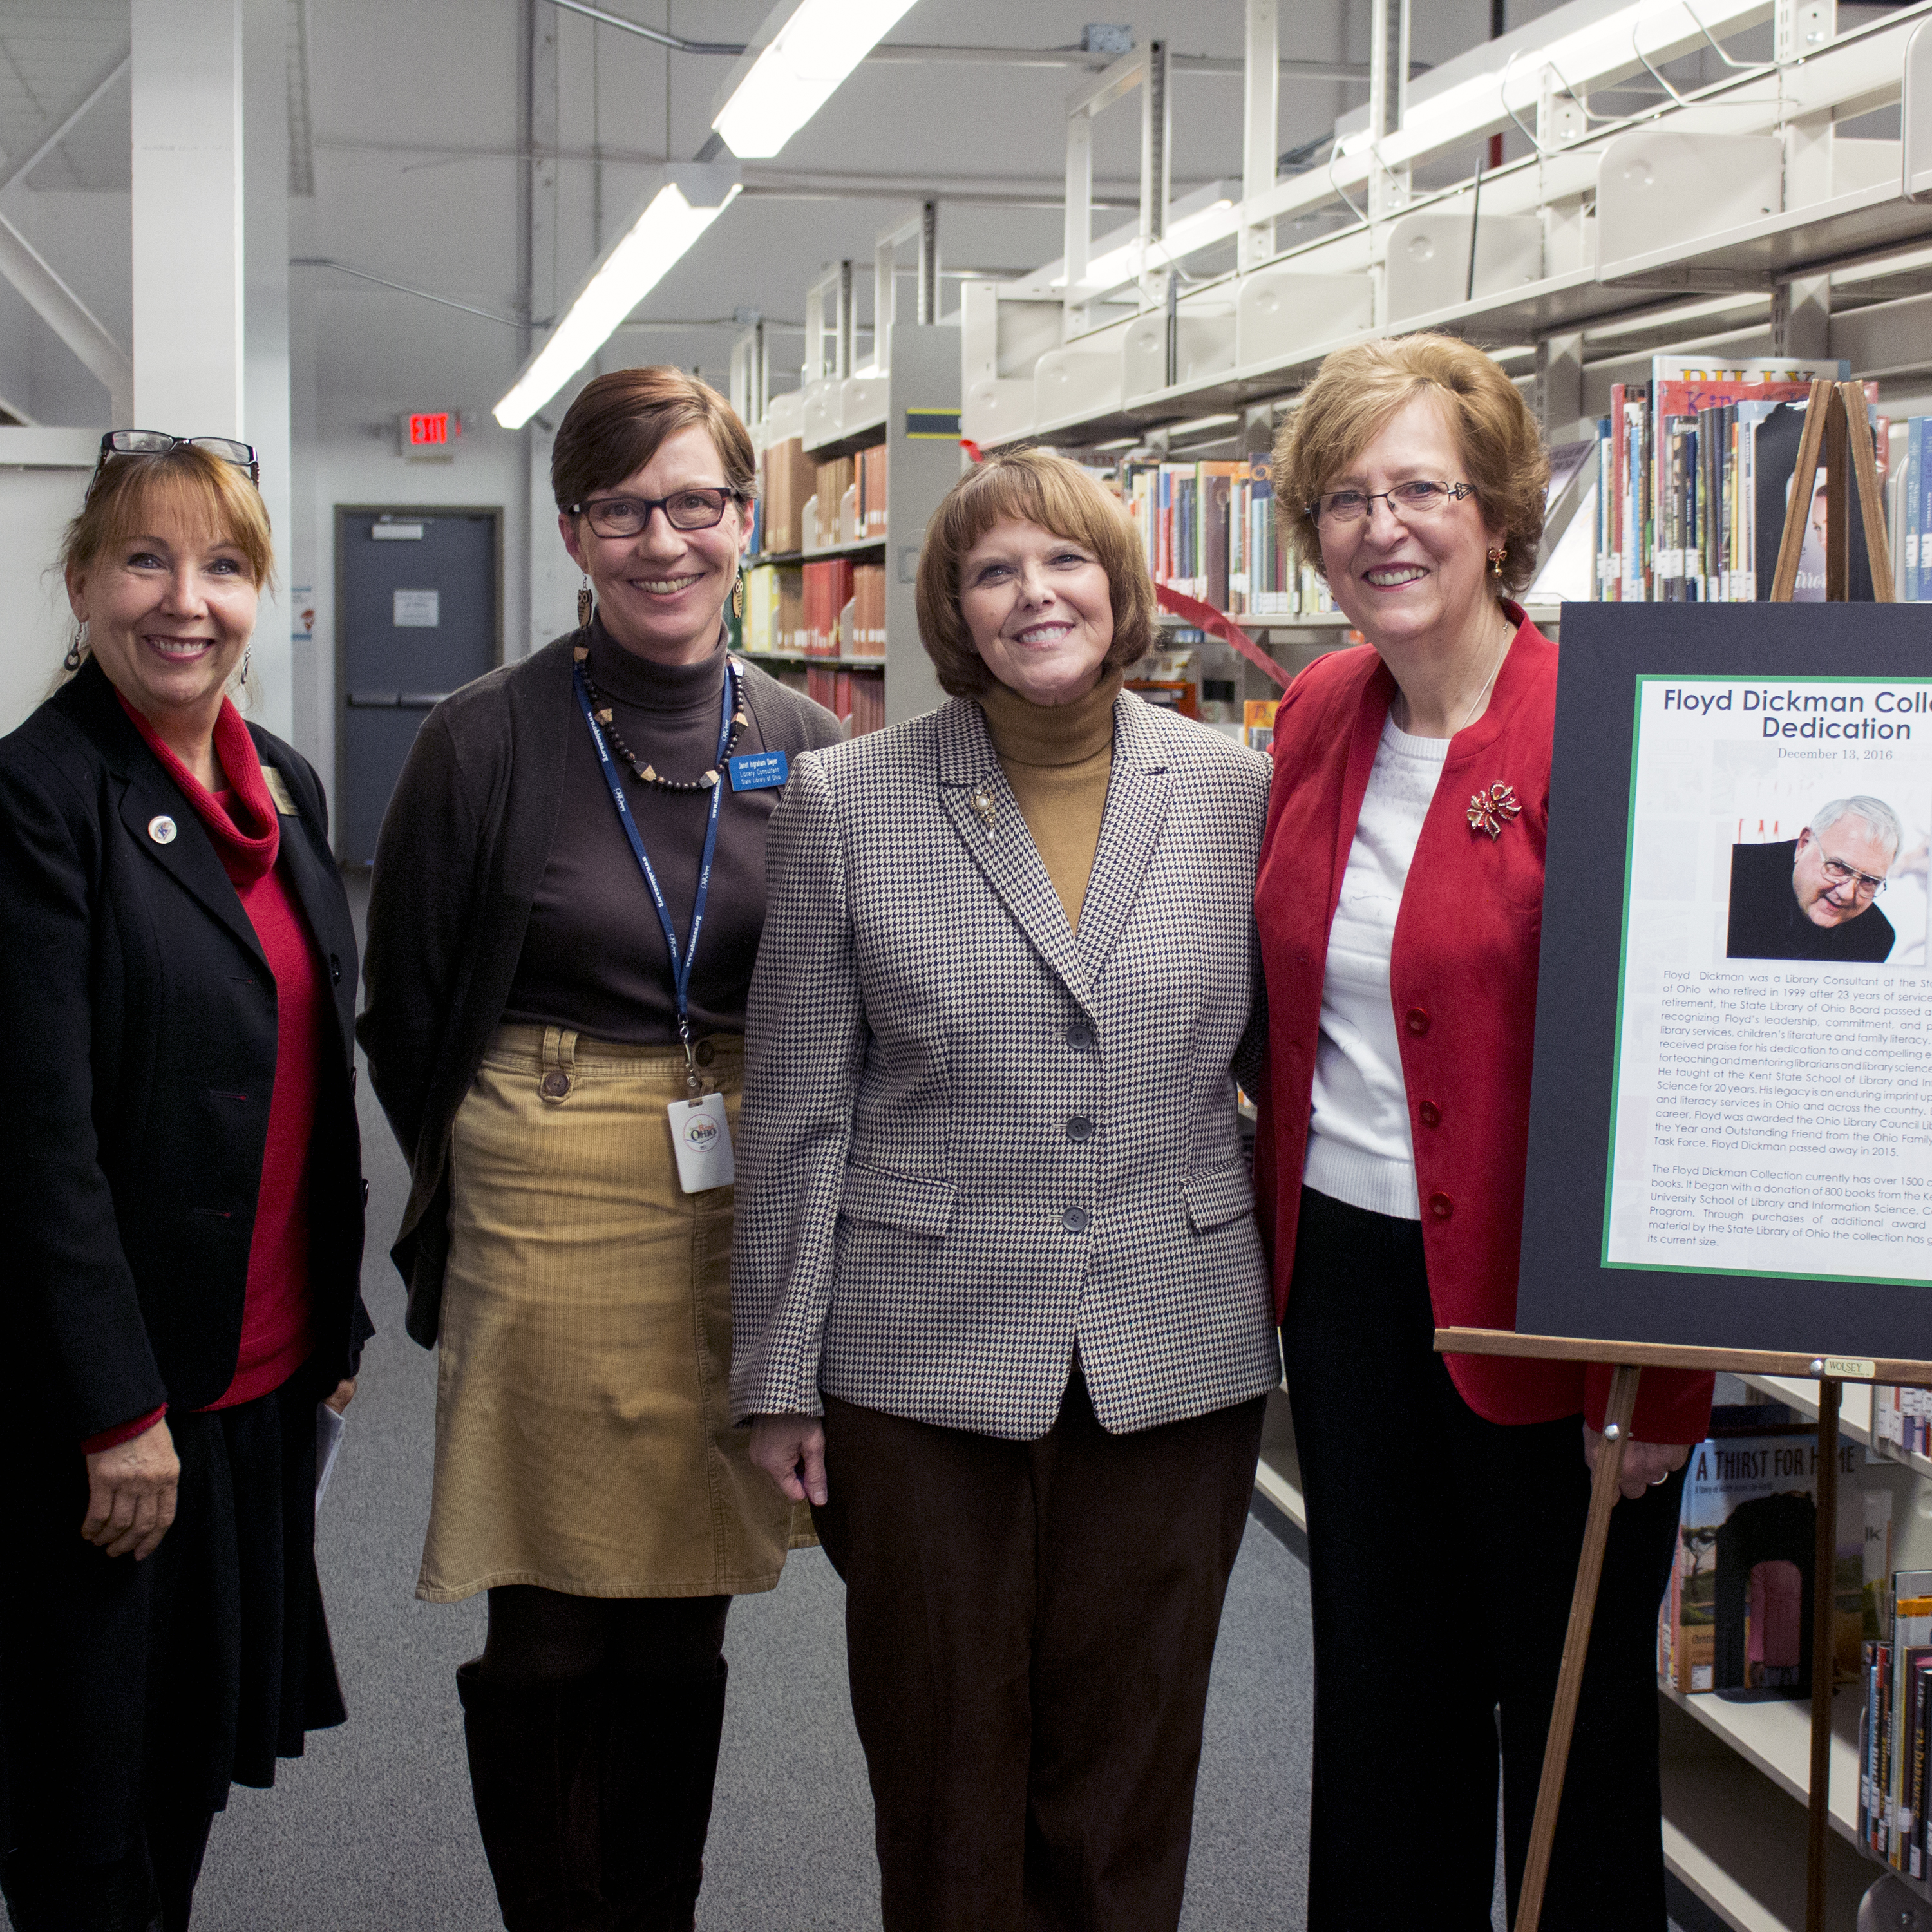 Photo from Floyd Dickman Collection Dedication